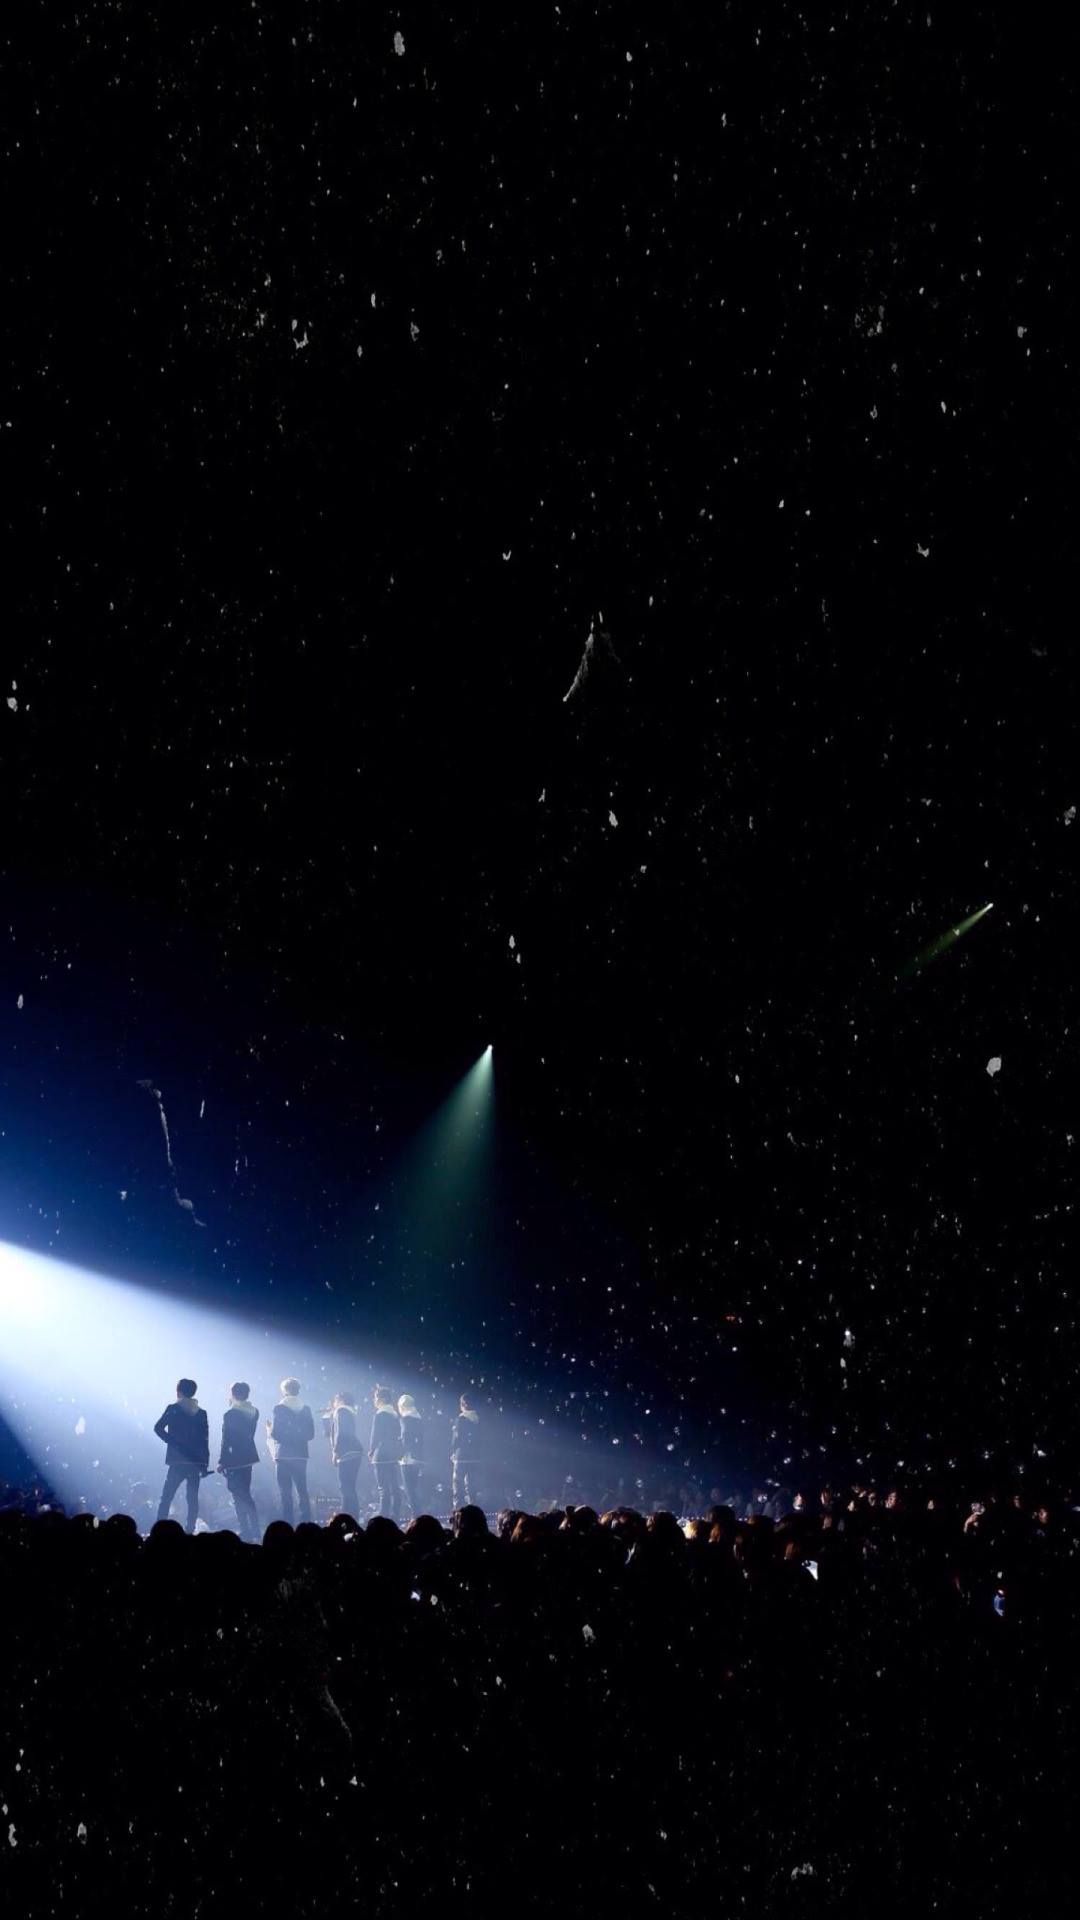 Bts Wallpaper Hd Iphone Star, Download Wallpapers on